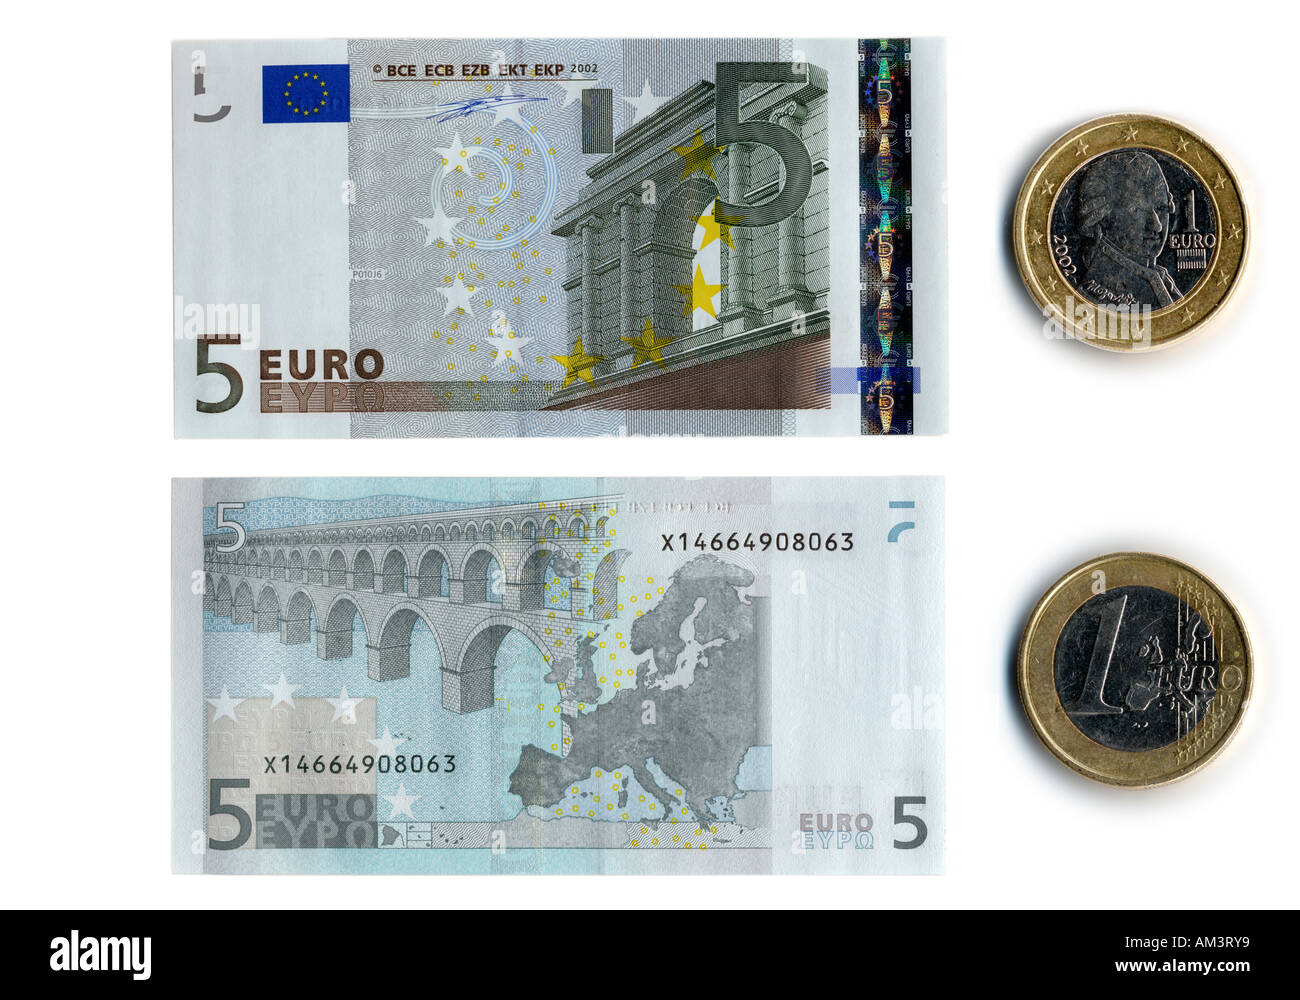 Front And Back Side Of The Five Euro Bank Note And Euro Coin Stock Photo